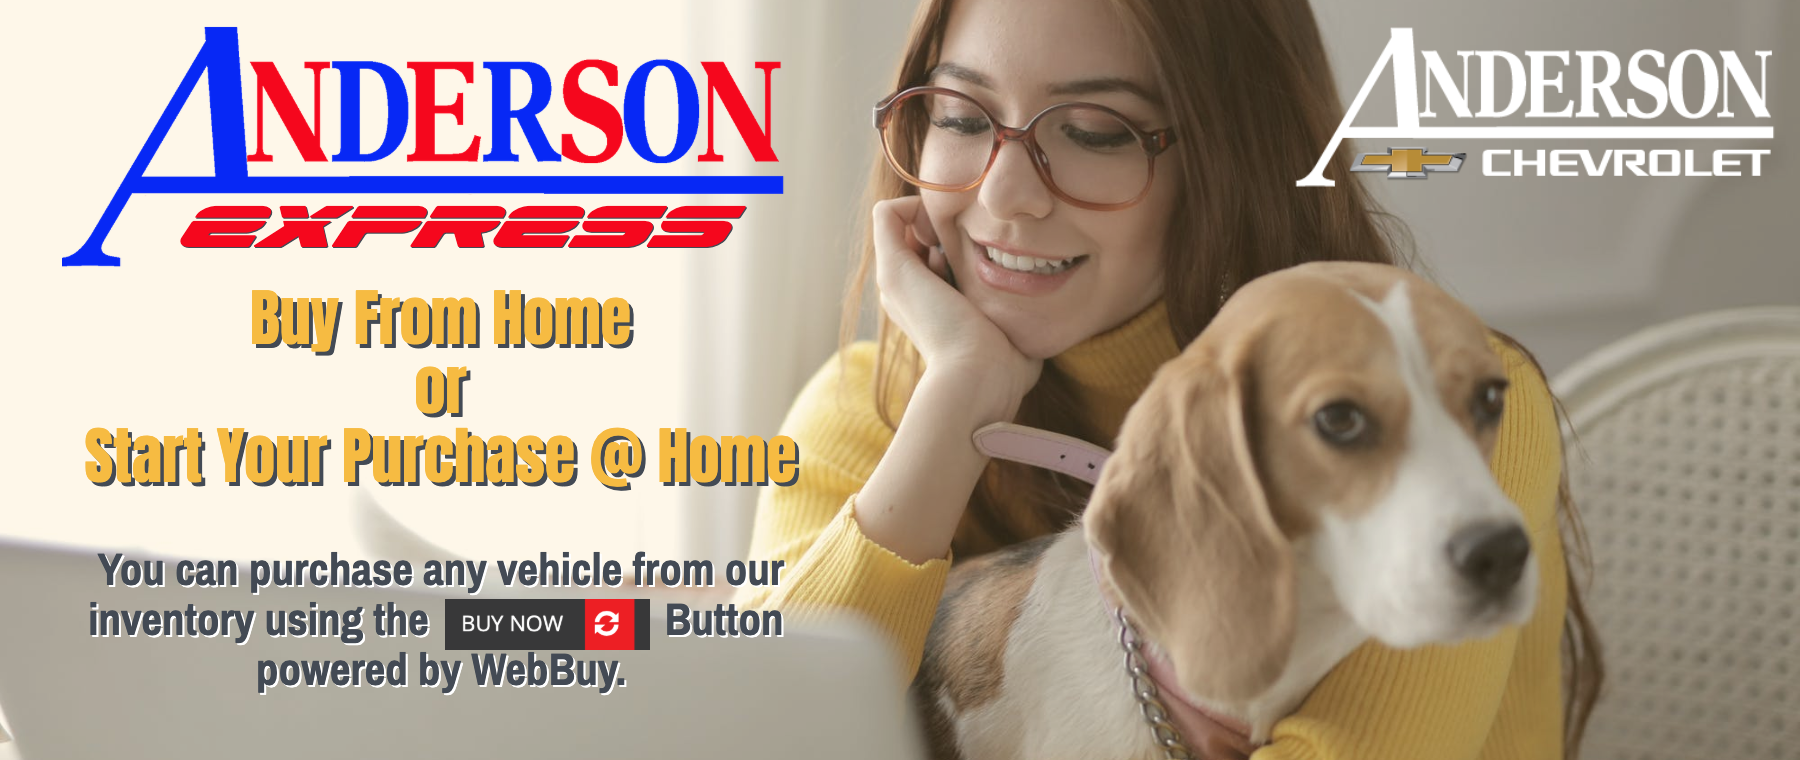 Anderson Express Buy From Home